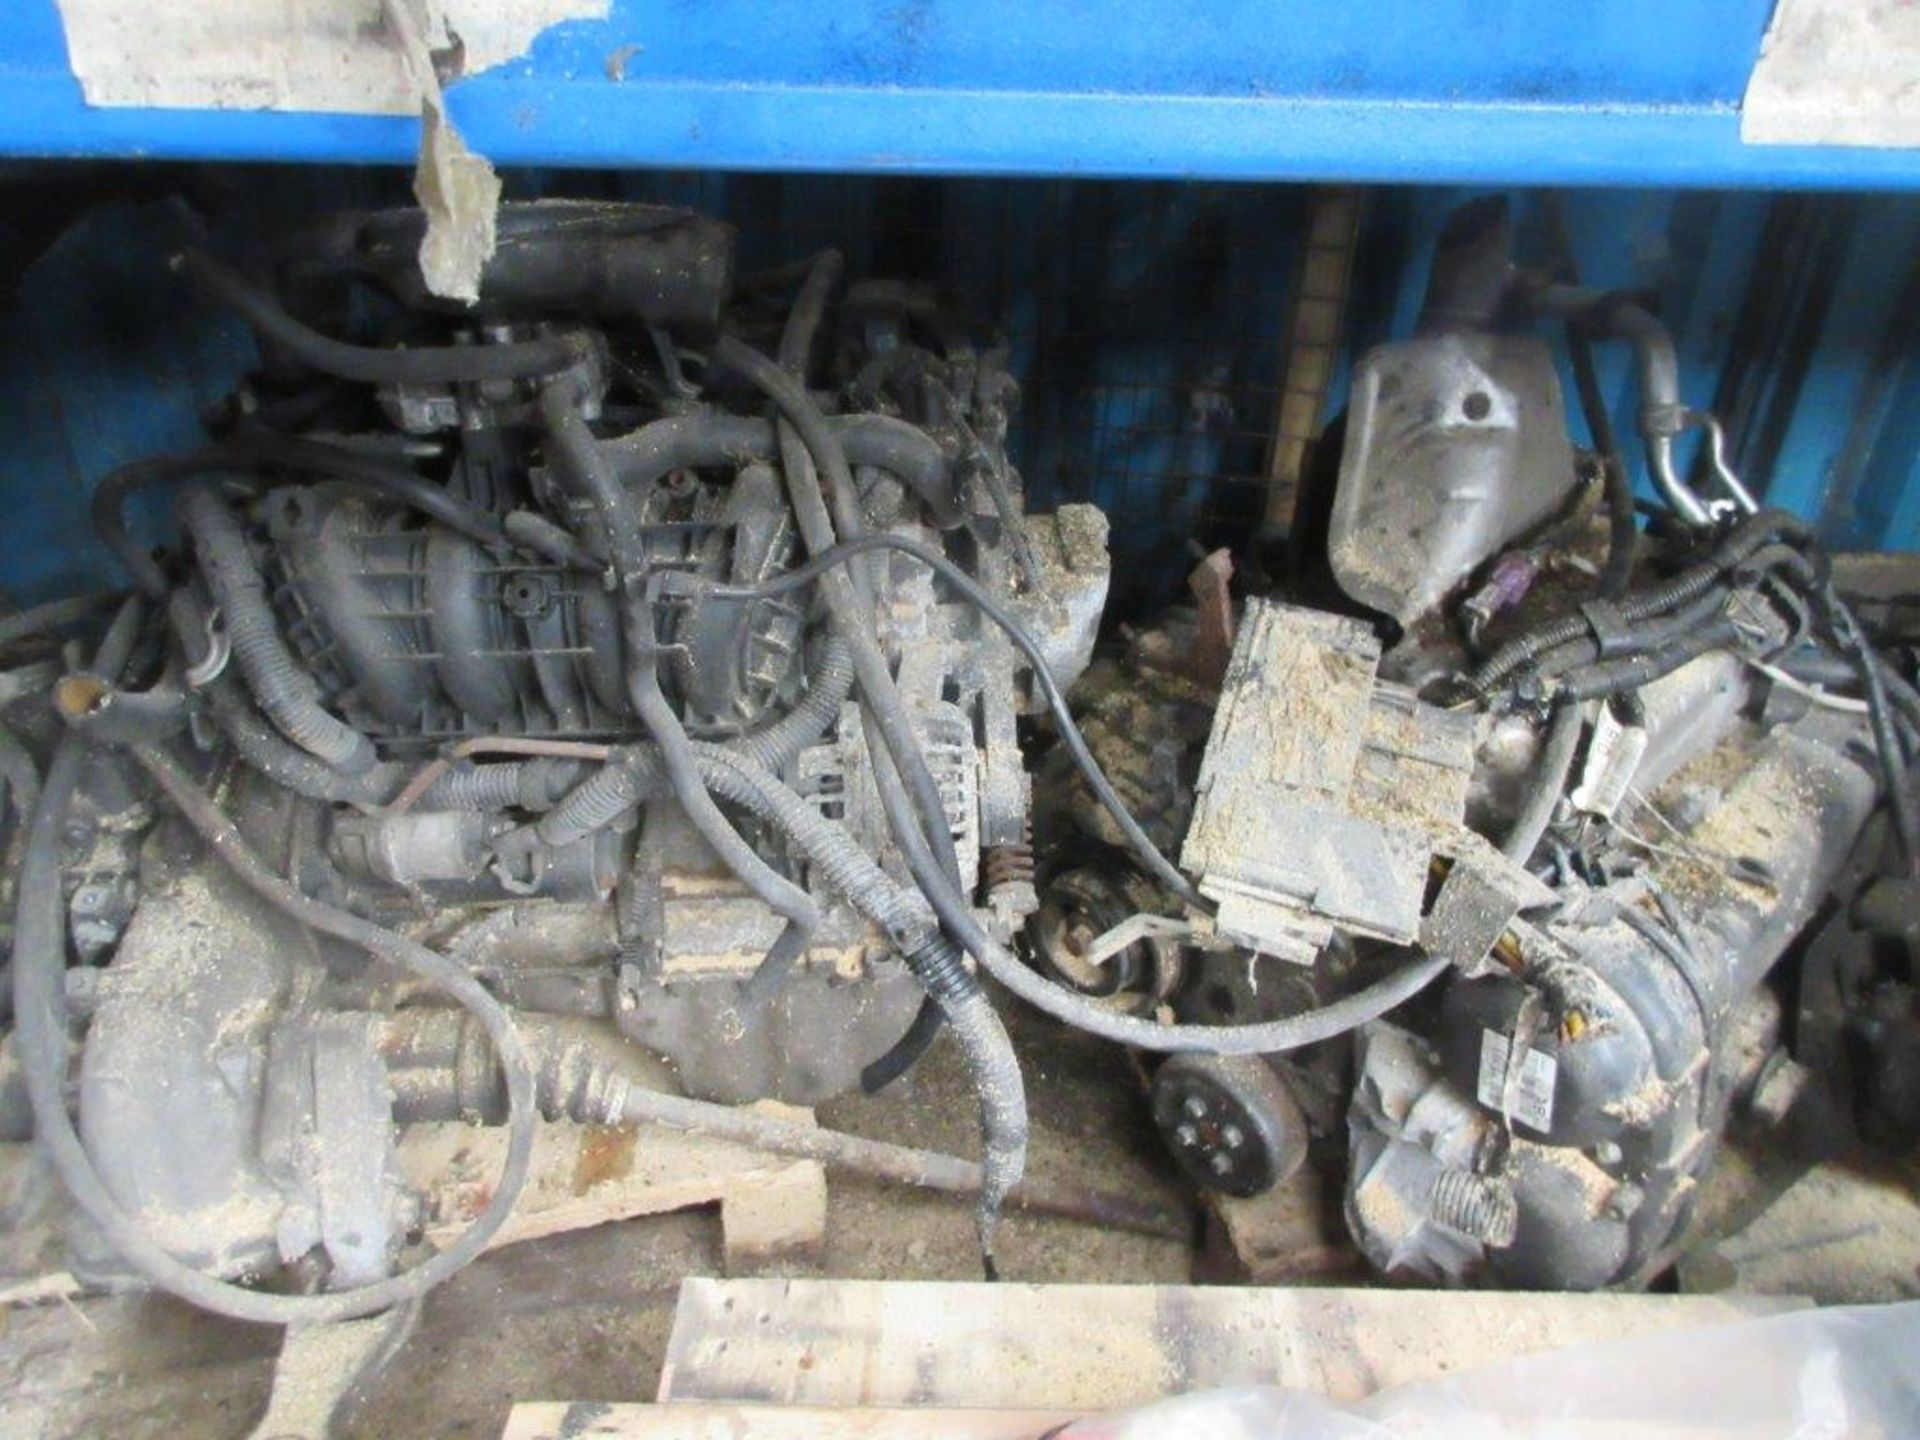 Lot 44 - 15 assorted engines including unknown, 1.25 unknown, Astra Z16 XEP, Toyota VVTi, unknown, unknown,